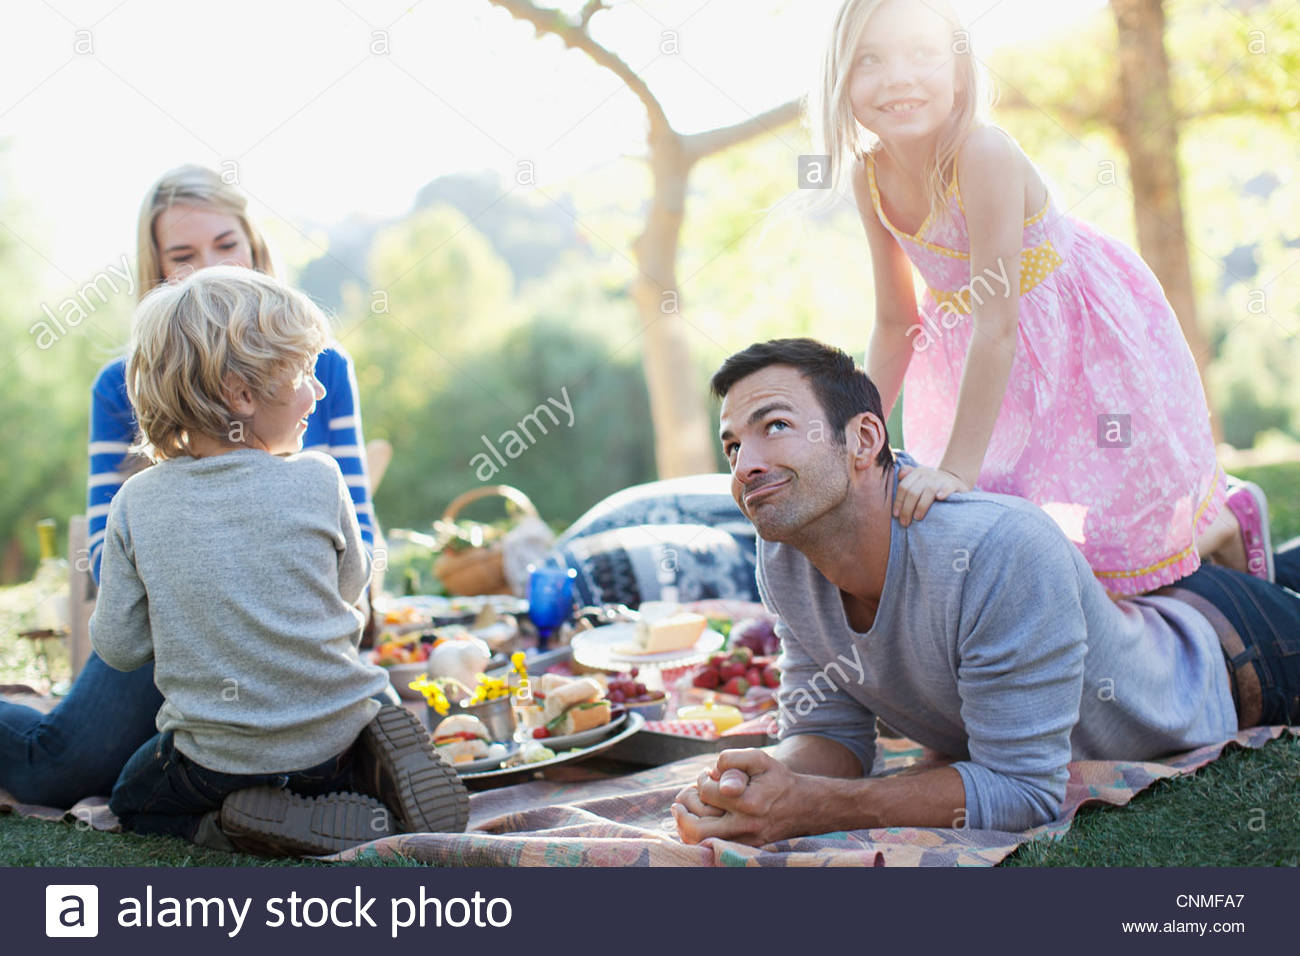 Family picnicking in grass - Stock Image